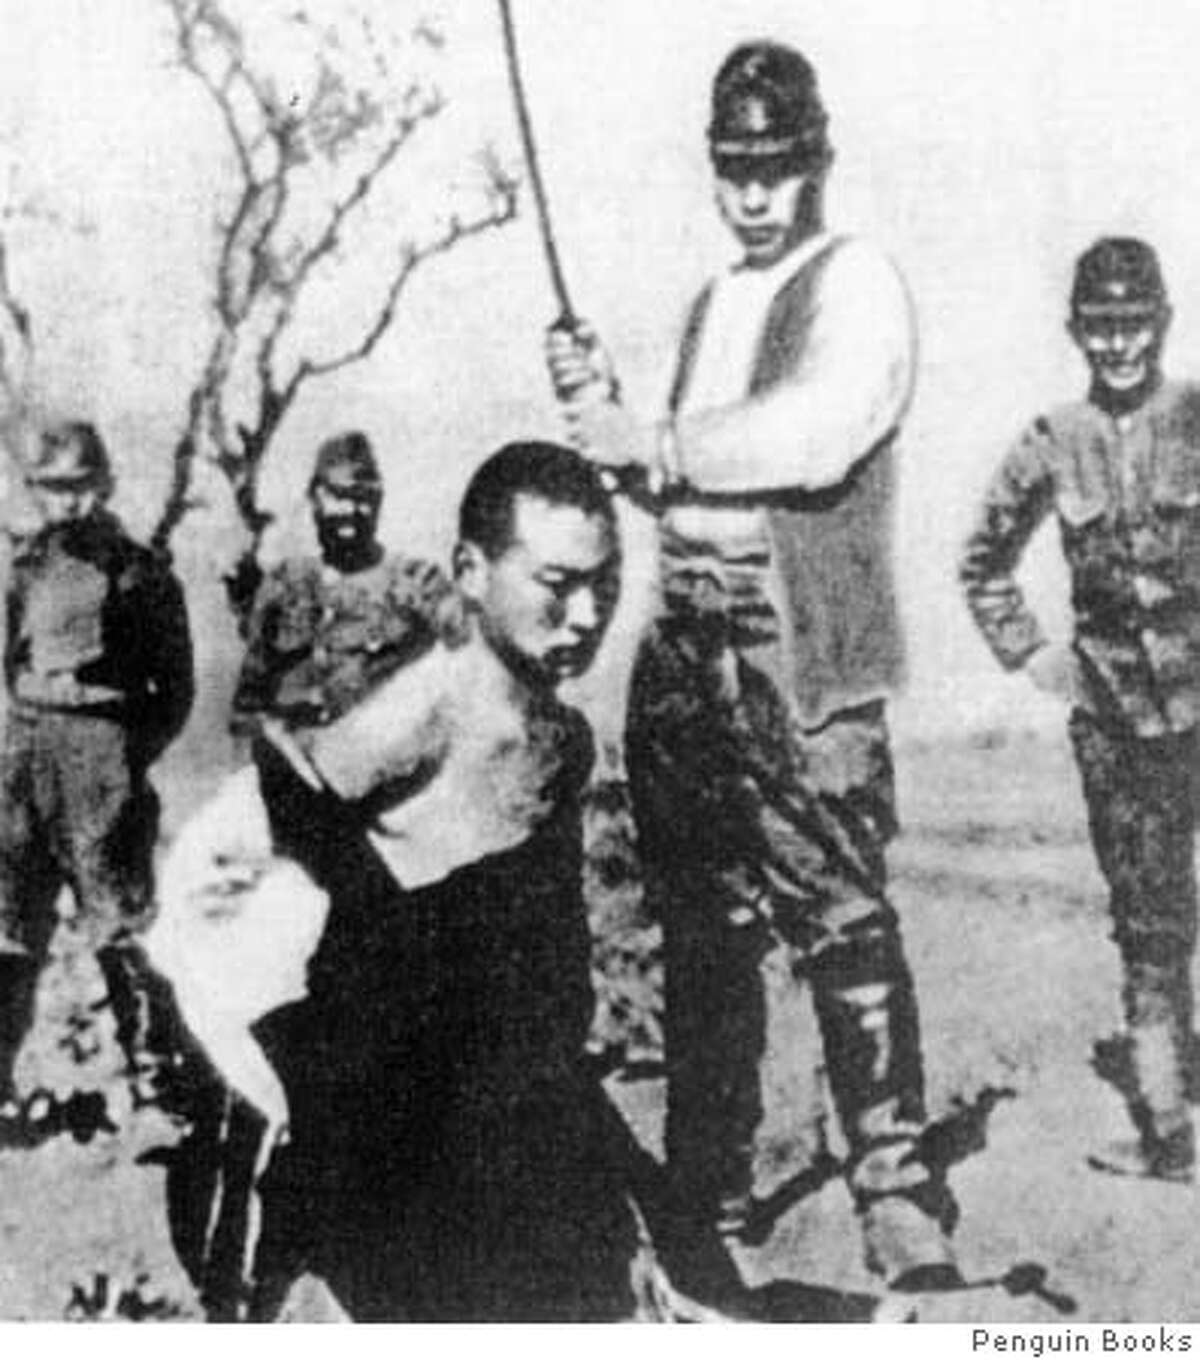 Chang20 In Nanking the Japanese turned murder into sport. Note the smiles on the Japanese in the background. (Revolutionary Documents, Taipei/Penguin Books Datebook#Datebook#Chronicle#11/20/2004#ALL#Advance##0422474067